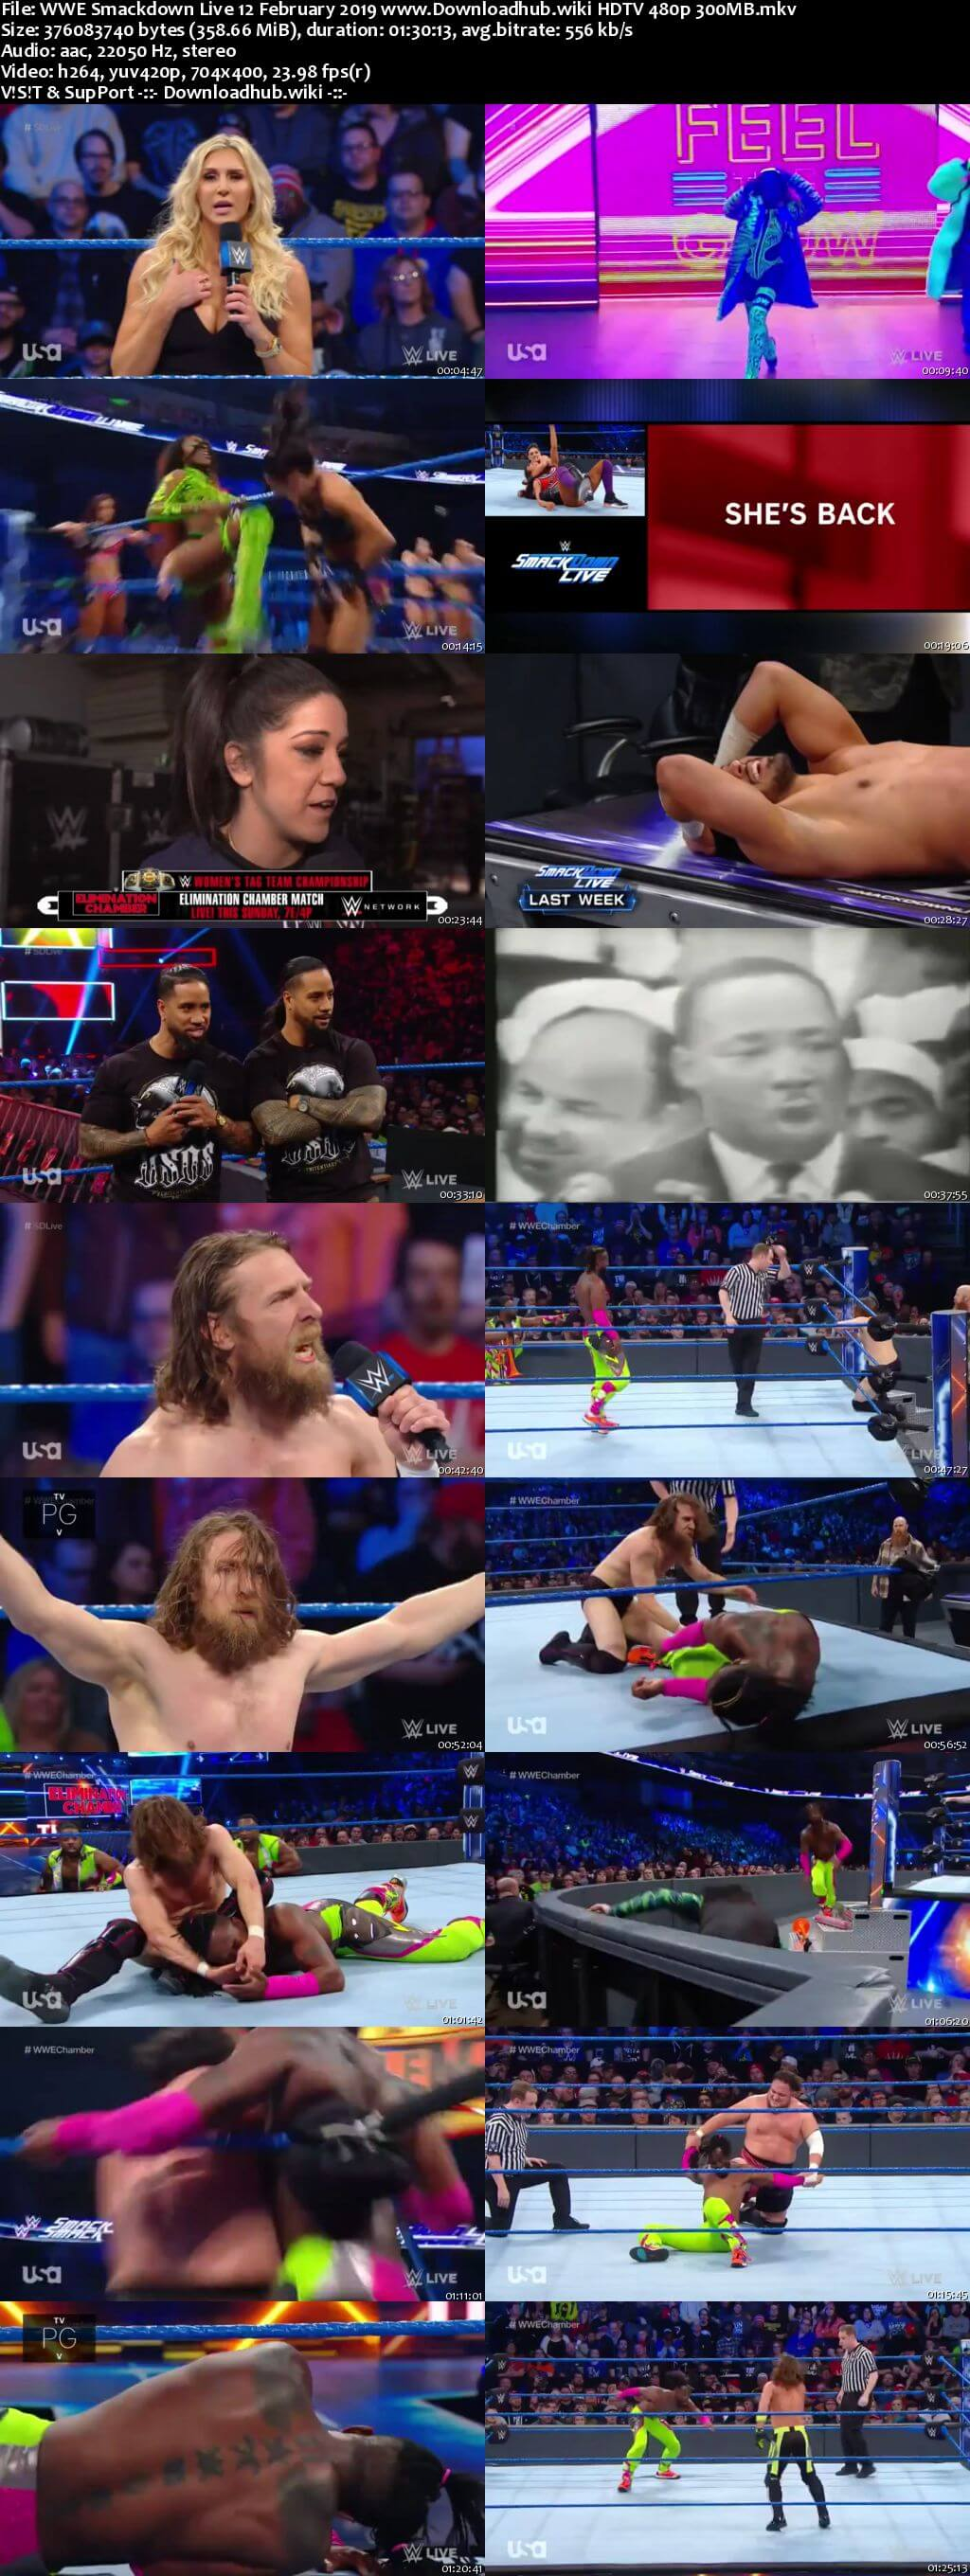 WWE Smackdown Live 12th February 2019 300MB HDTV 480p